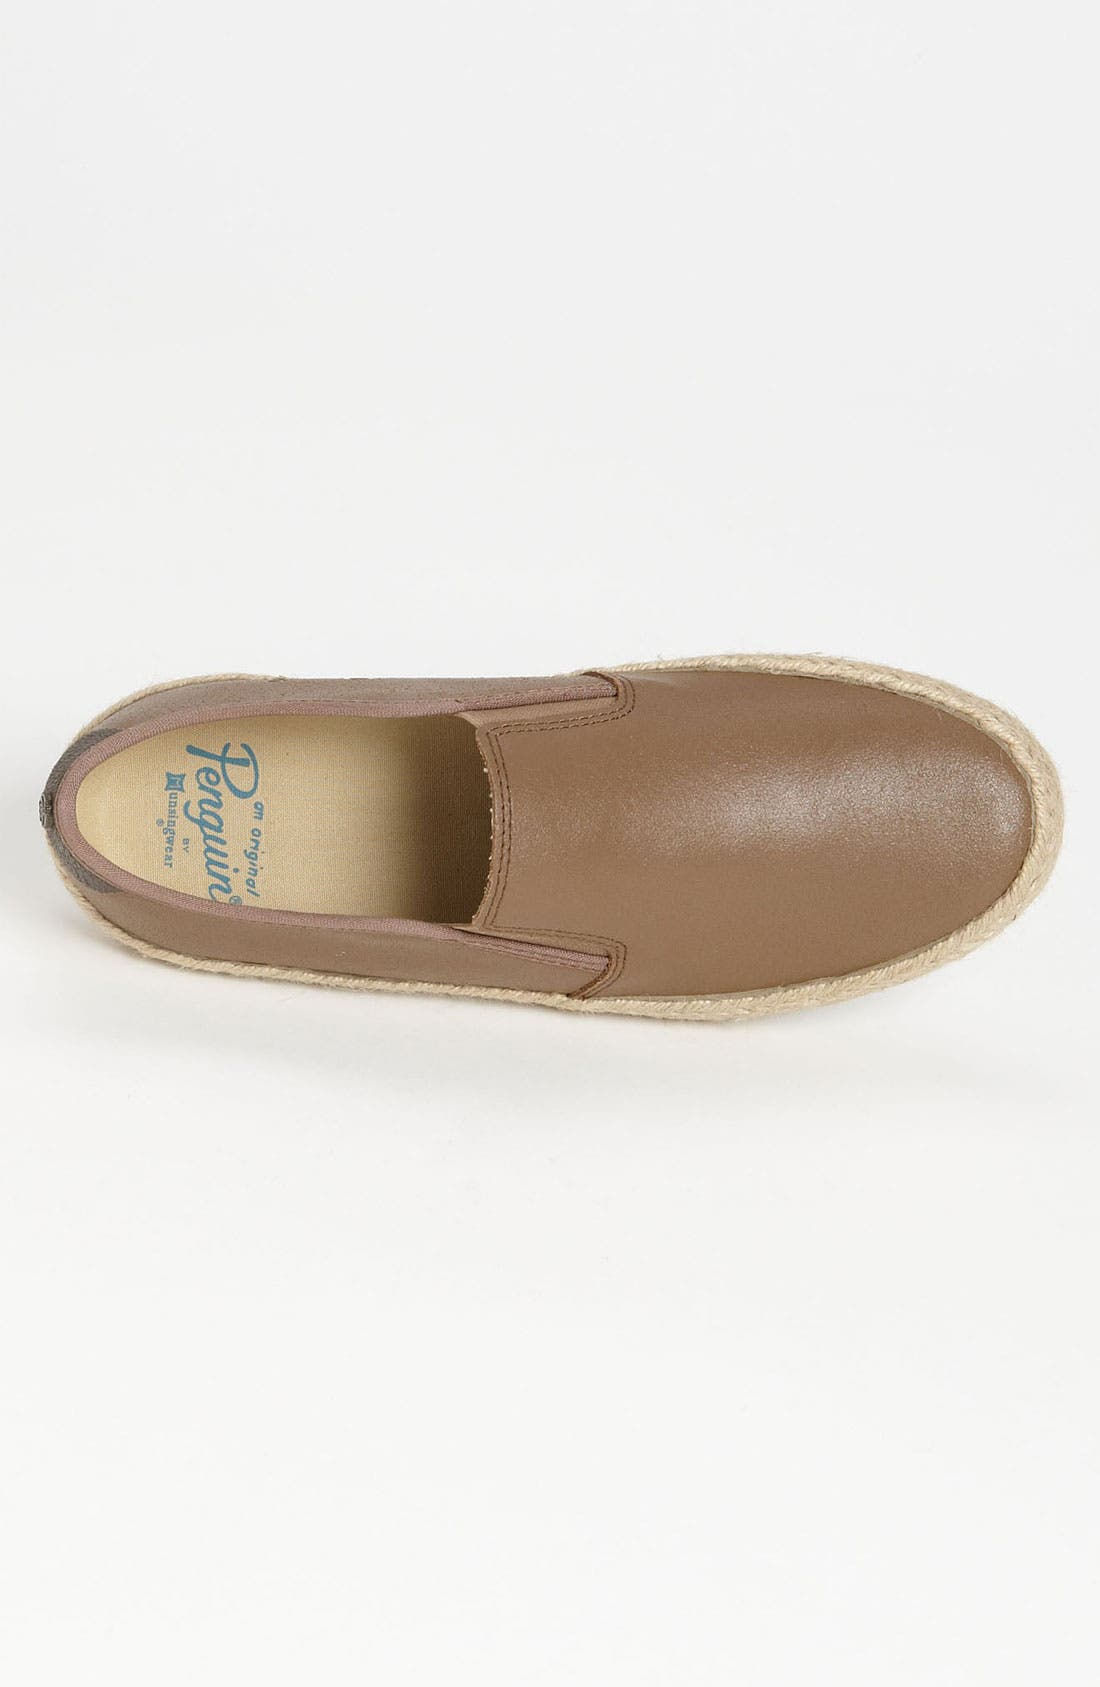 Alternate Image 3  - Original Penguin 'Espy' Espadrille Slip-On